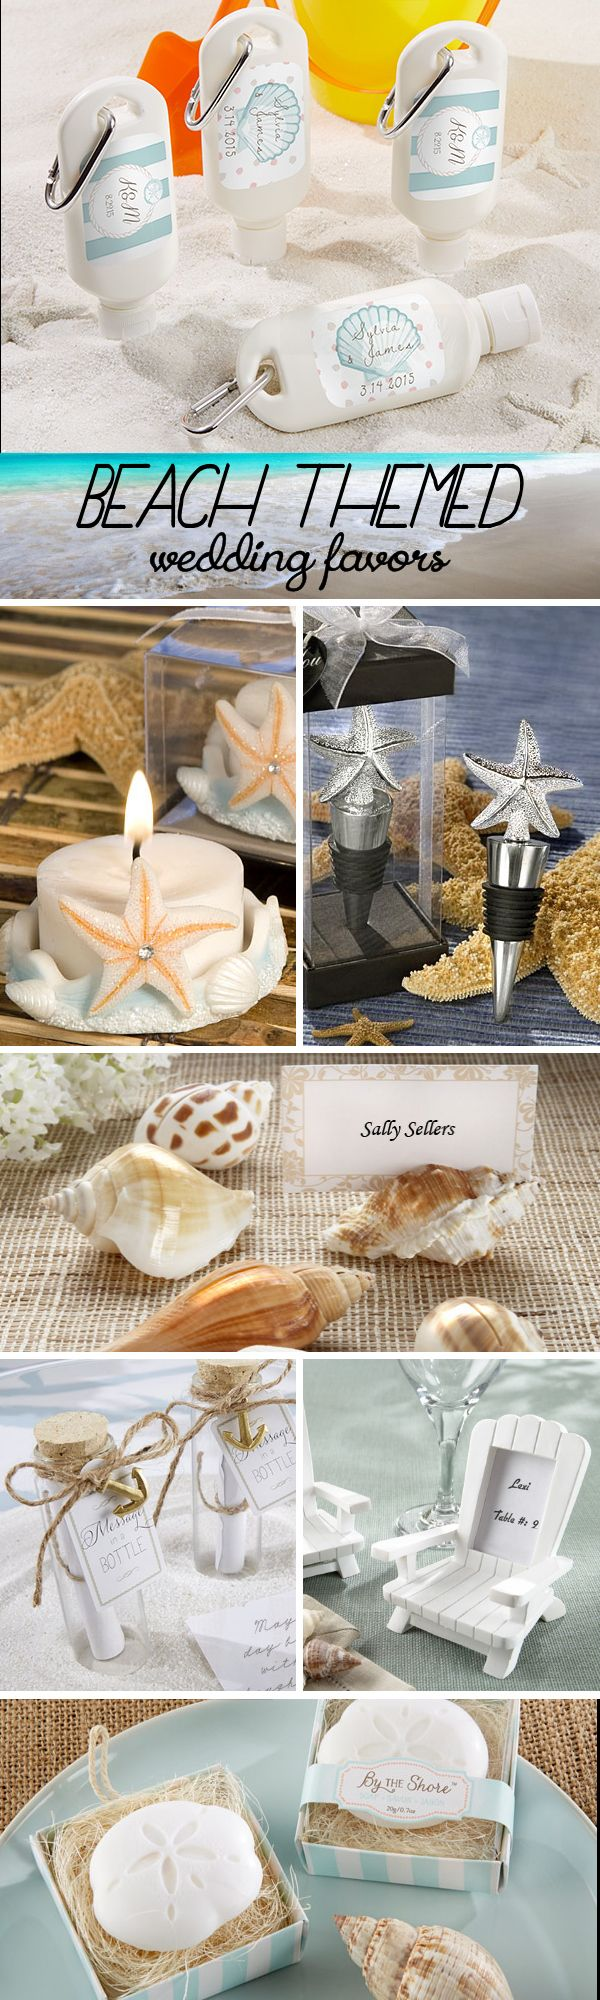 100 beach themed wedding favors that your guests will love